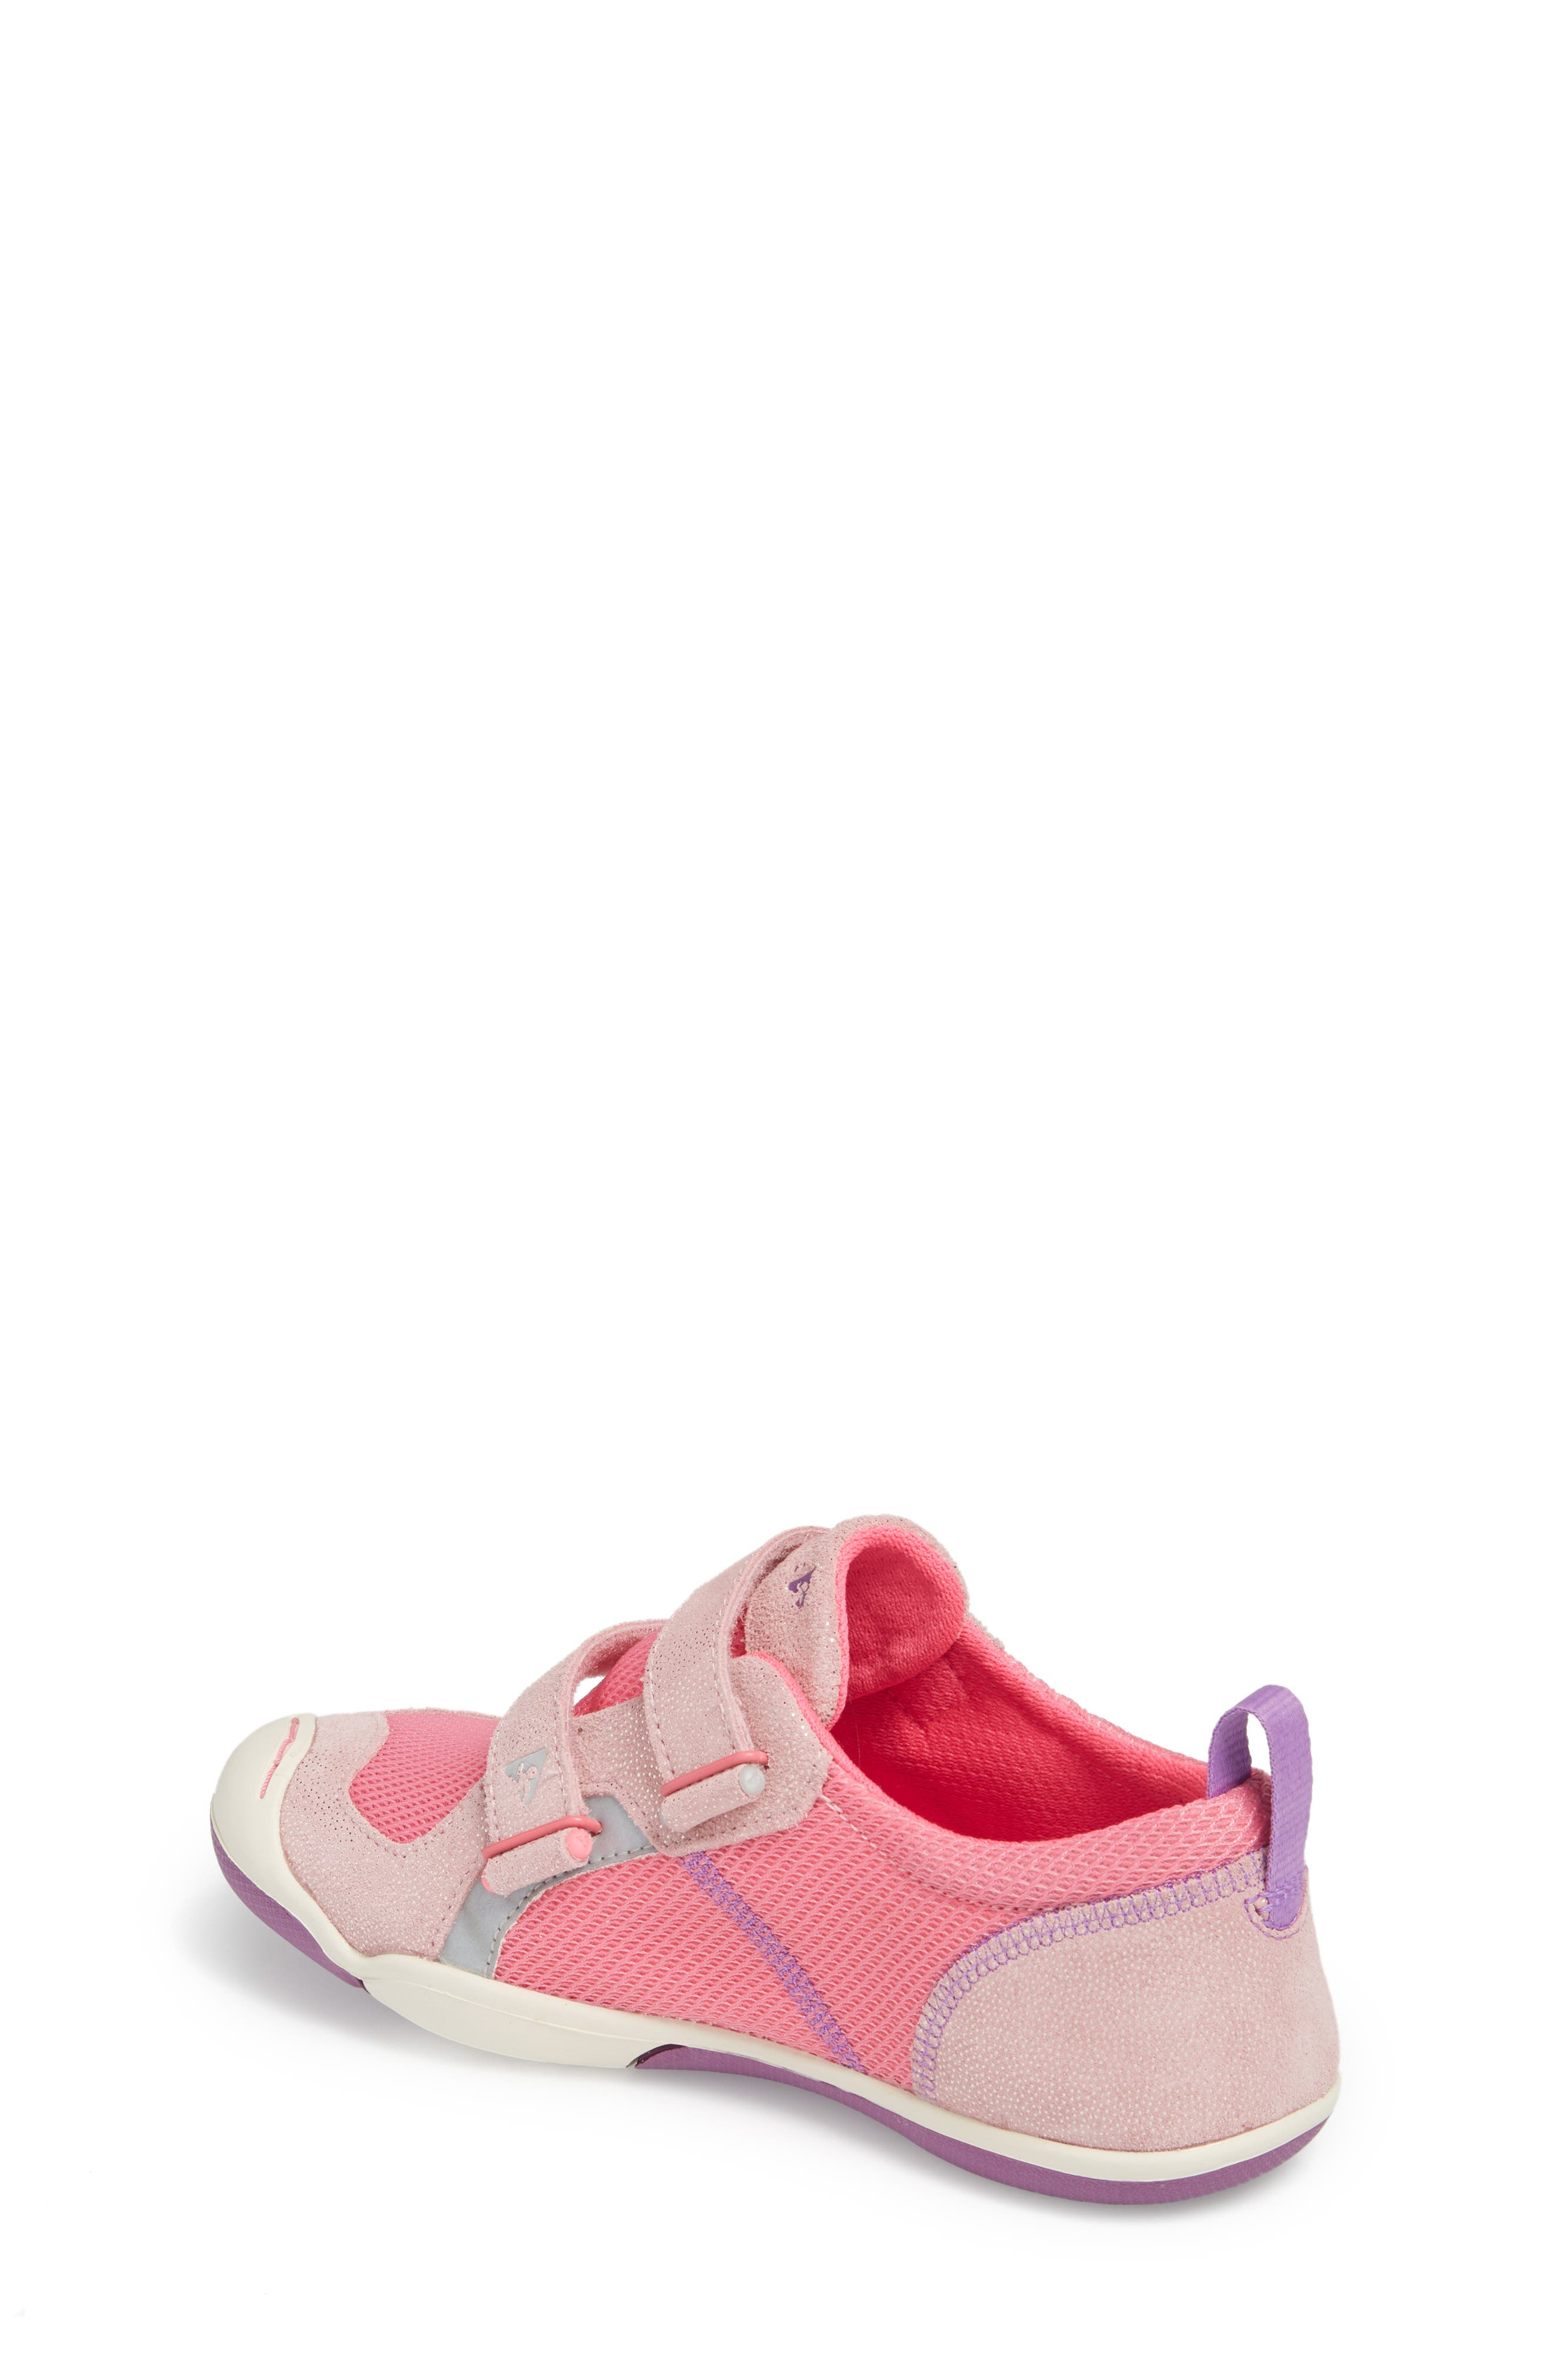 PLAE,                             'Ty' Customizable Sneaker,                             Alternate thumbnail 2, color,                             PINK/ PINK/ DEWBERRY